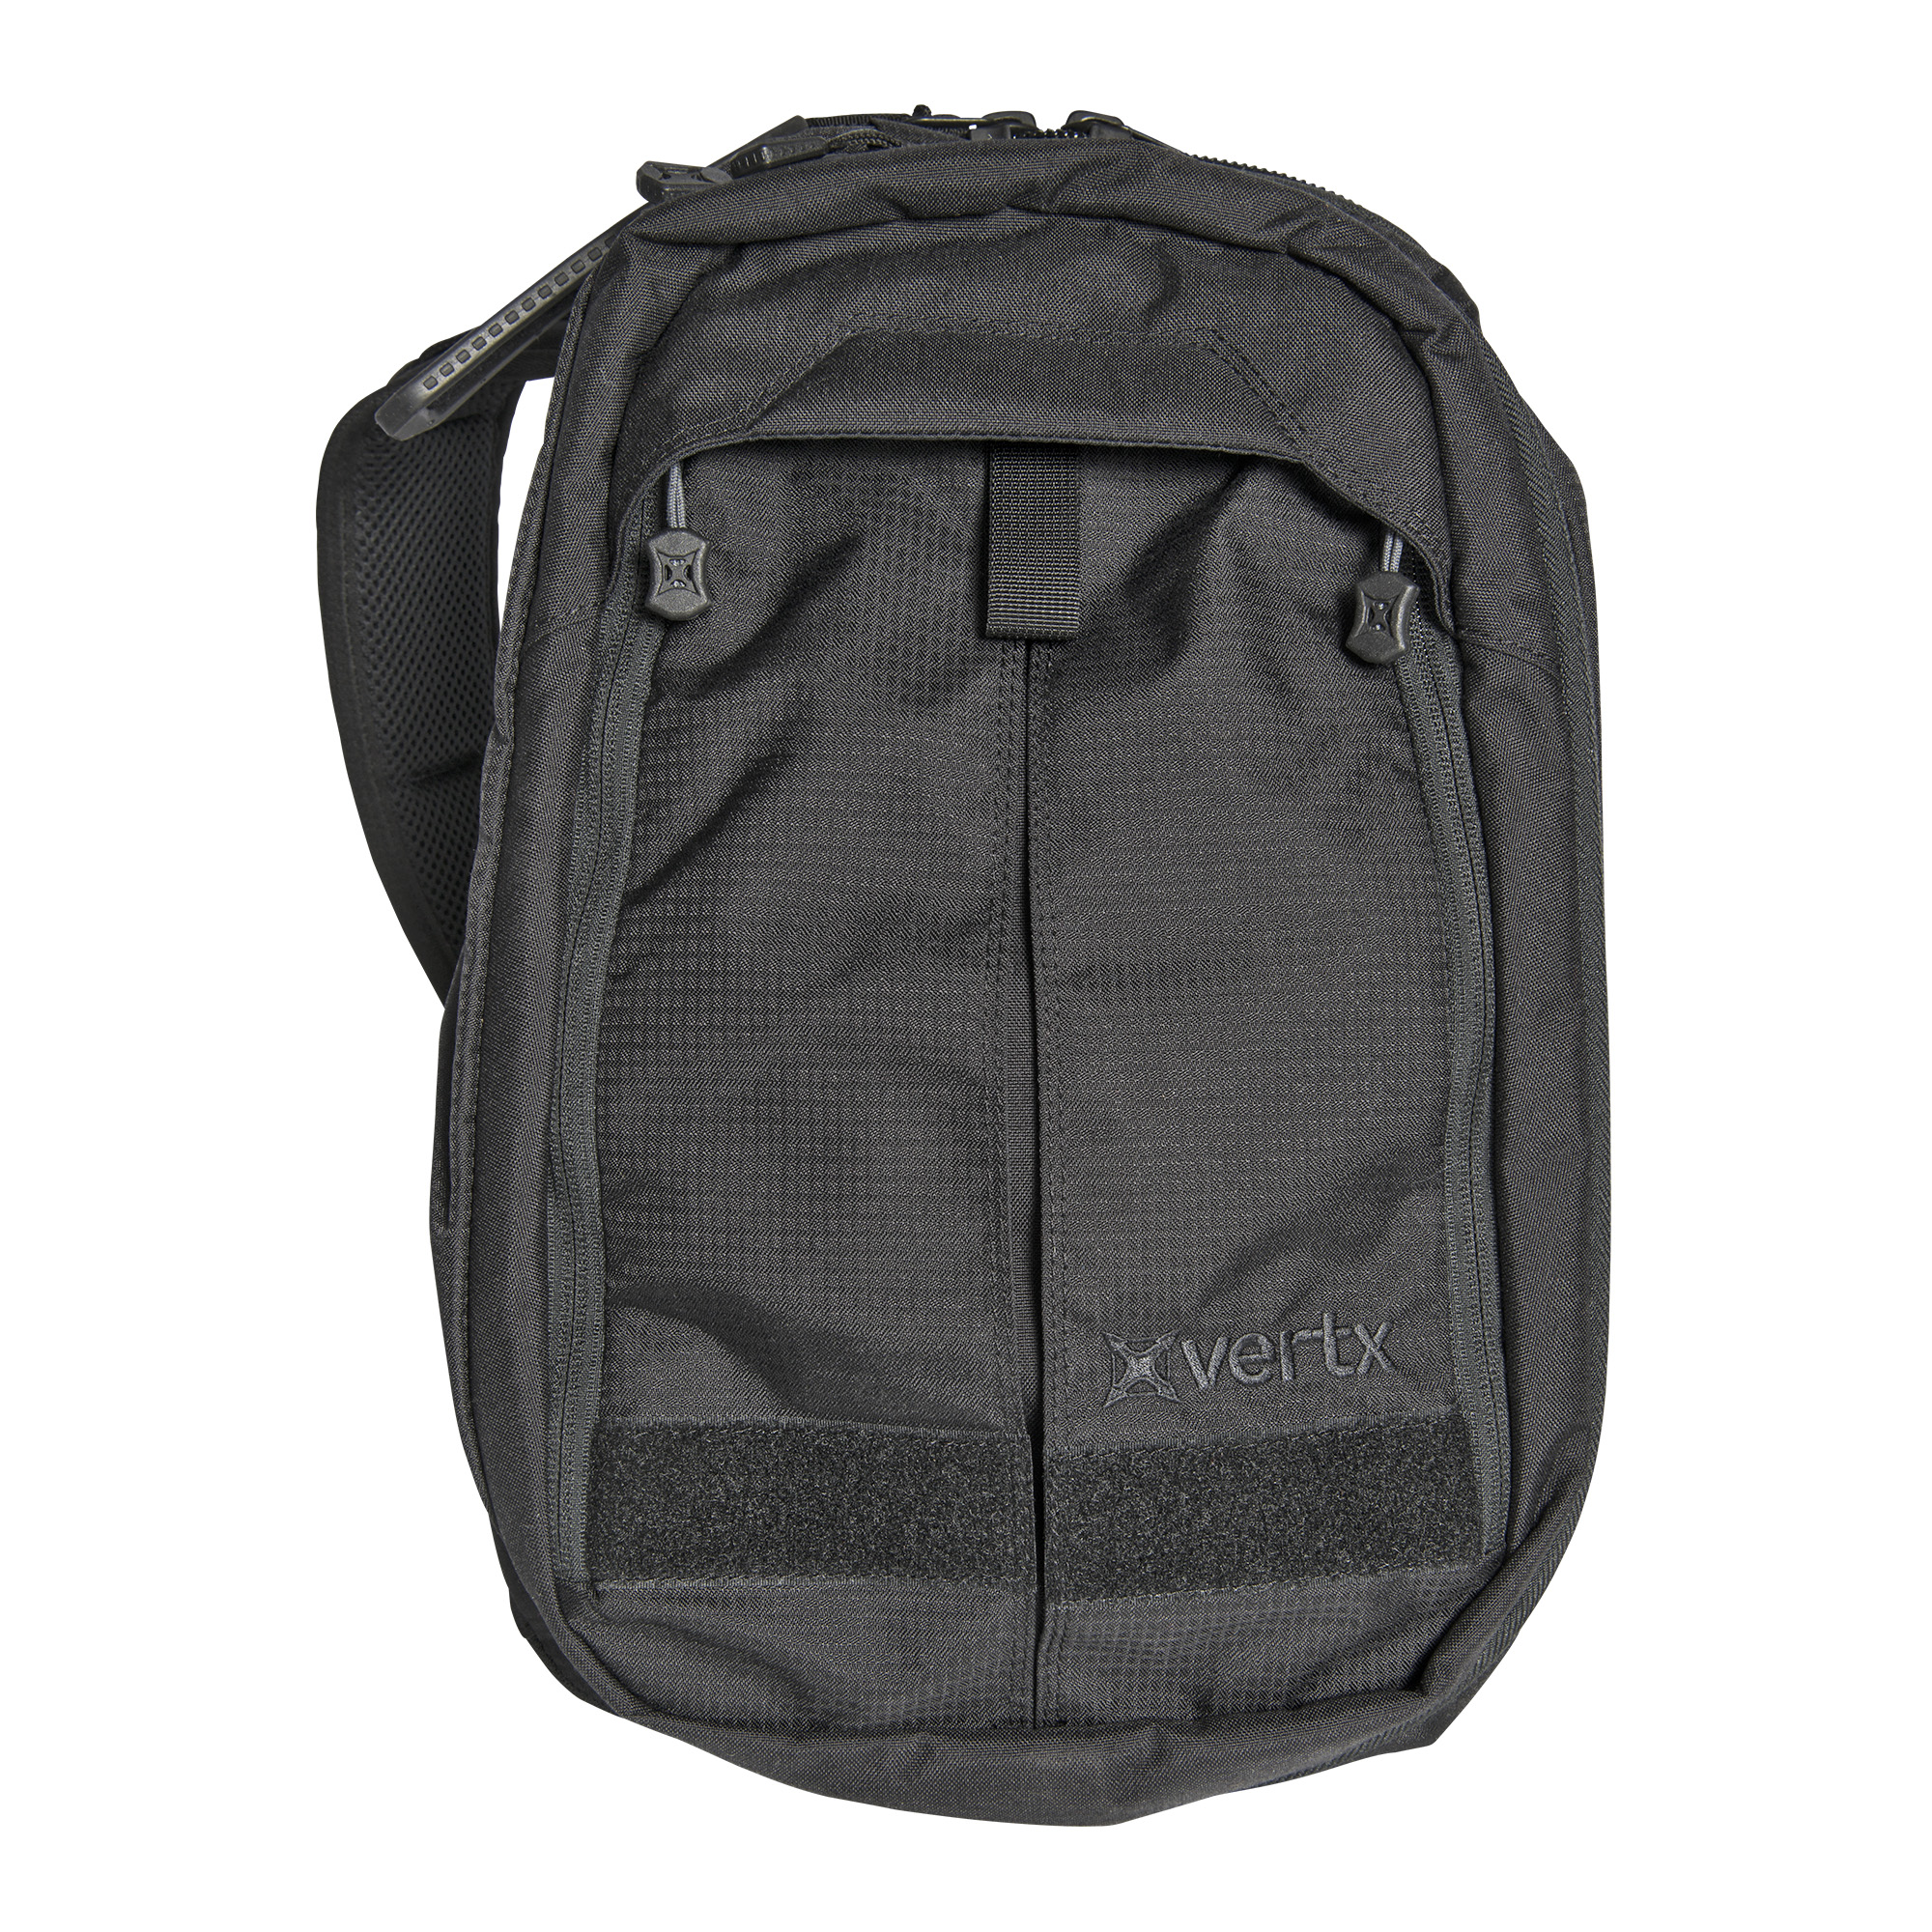 """The EDC Transit Sling provides a low-profile"""" compact way to carry essential gear and access firearms with speed. Designed to hold a tablet or small laptop in addition to a weapon"""" the transit sling works effectively in the field and urban applications."""